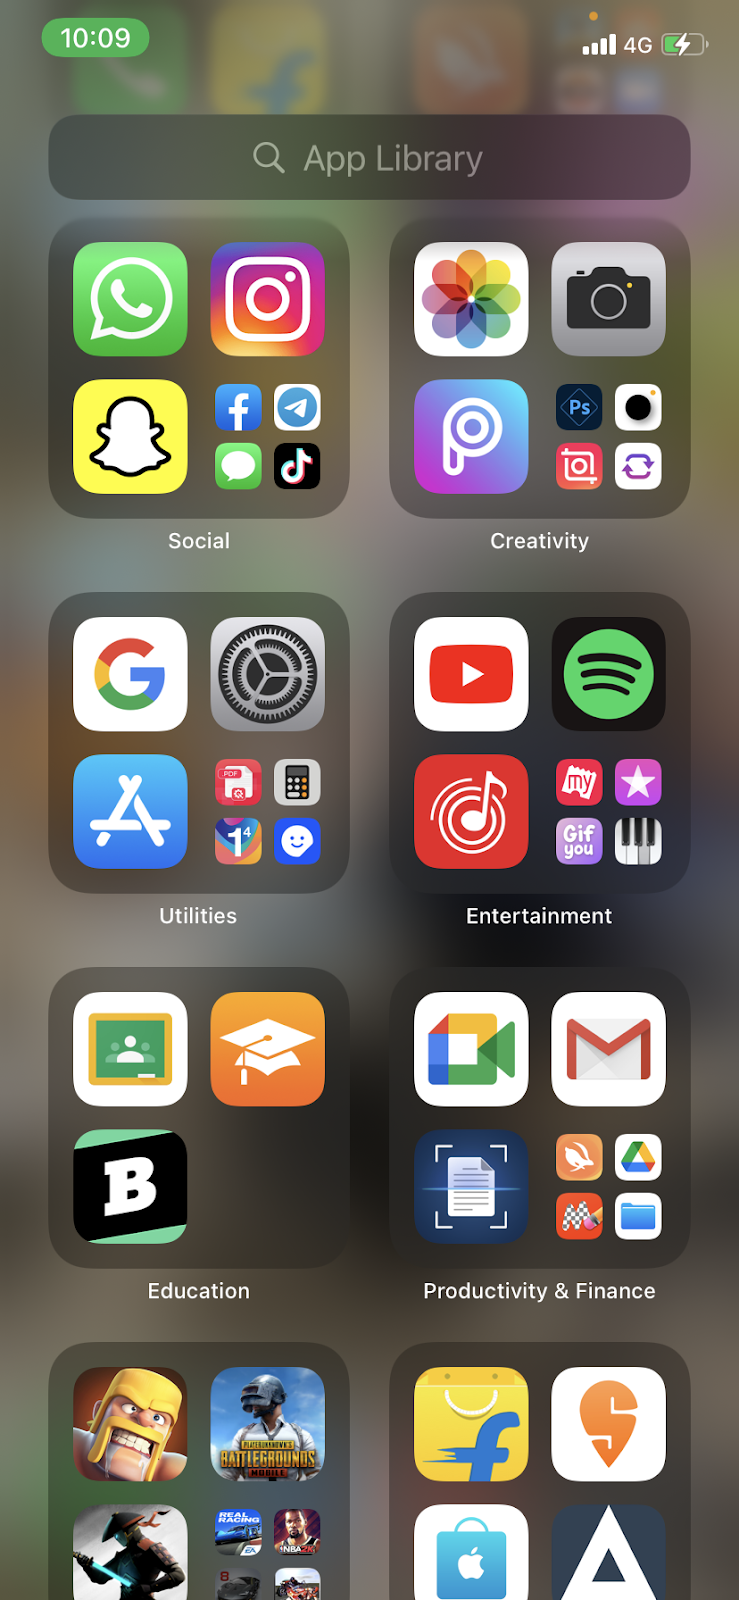 The Utilities section on an iPhone home screen